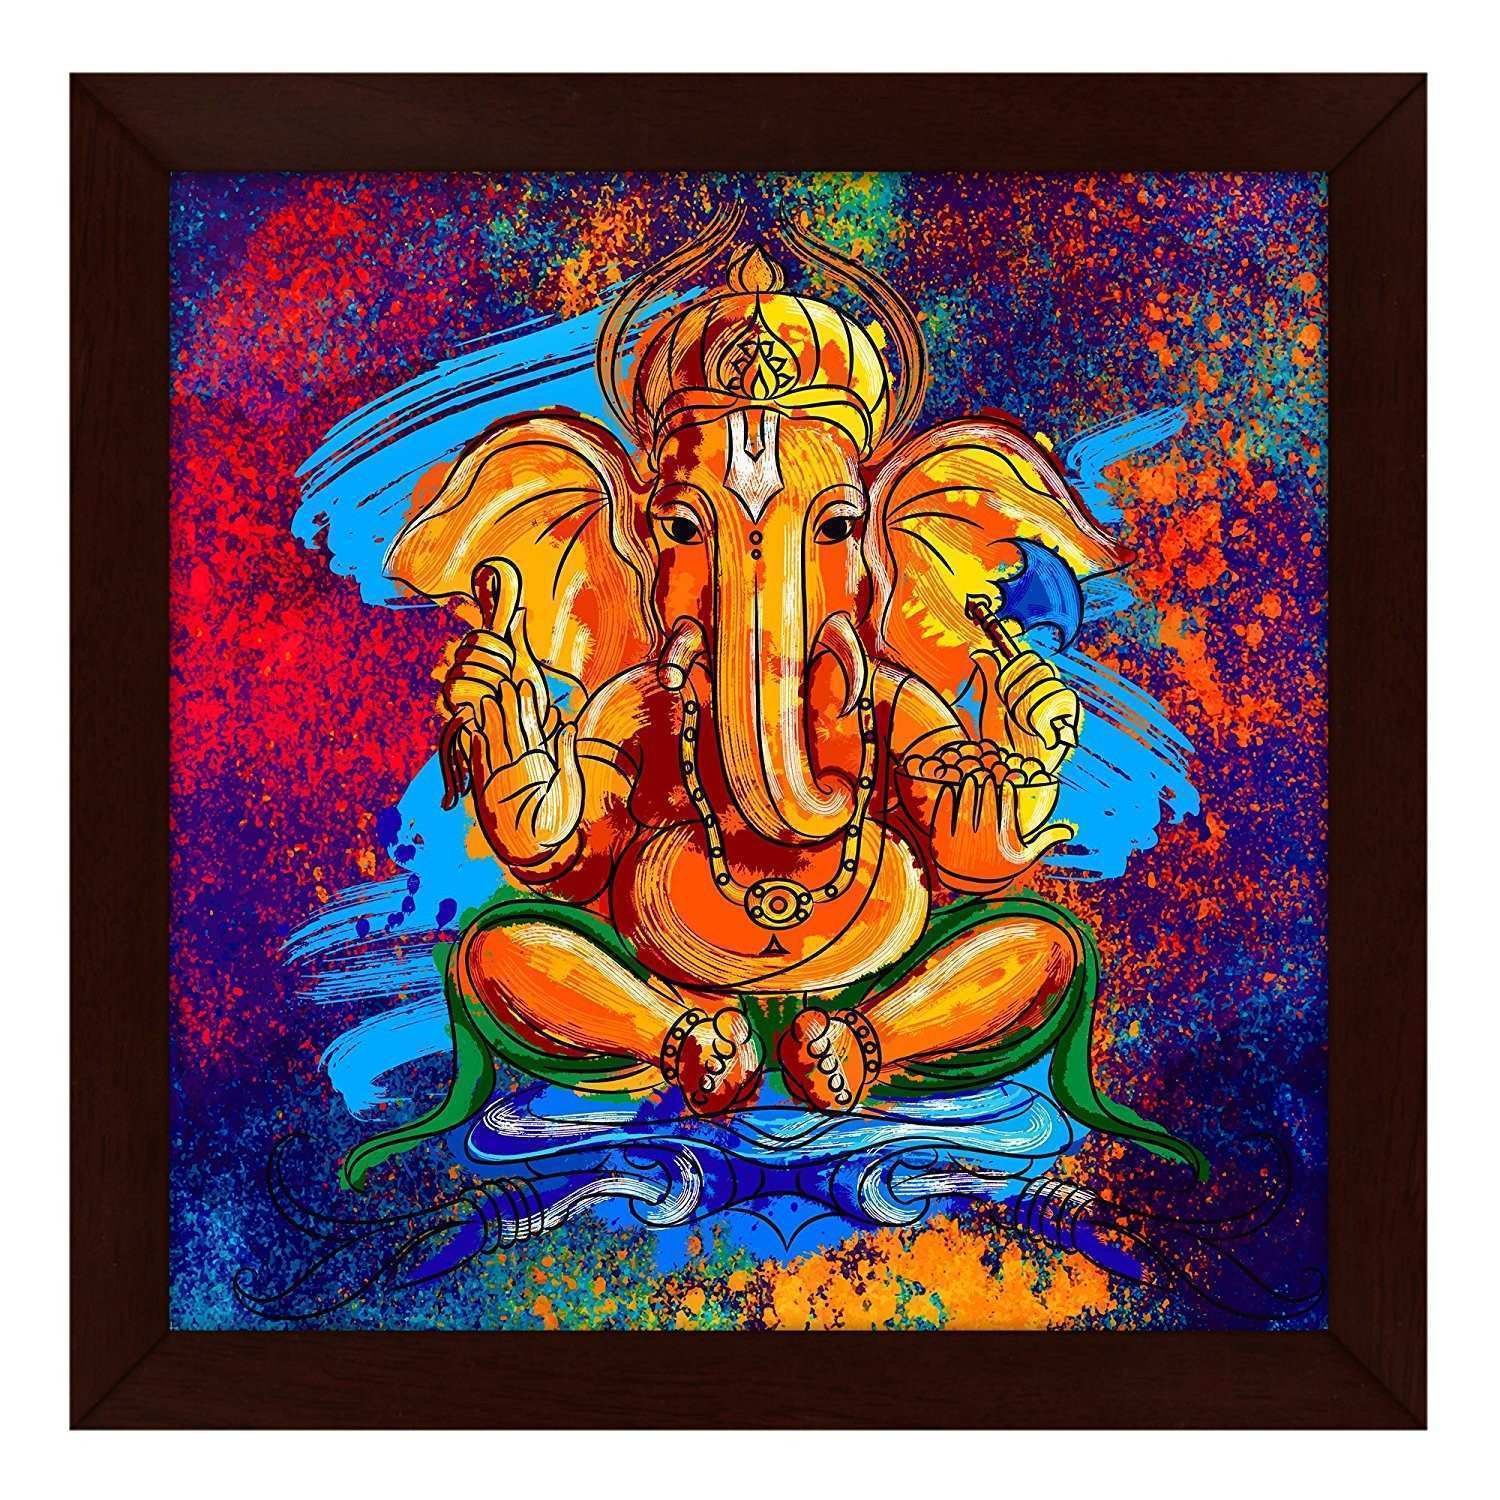 Story Home Artistically Designed Ganesha Framed Wall Art Painting